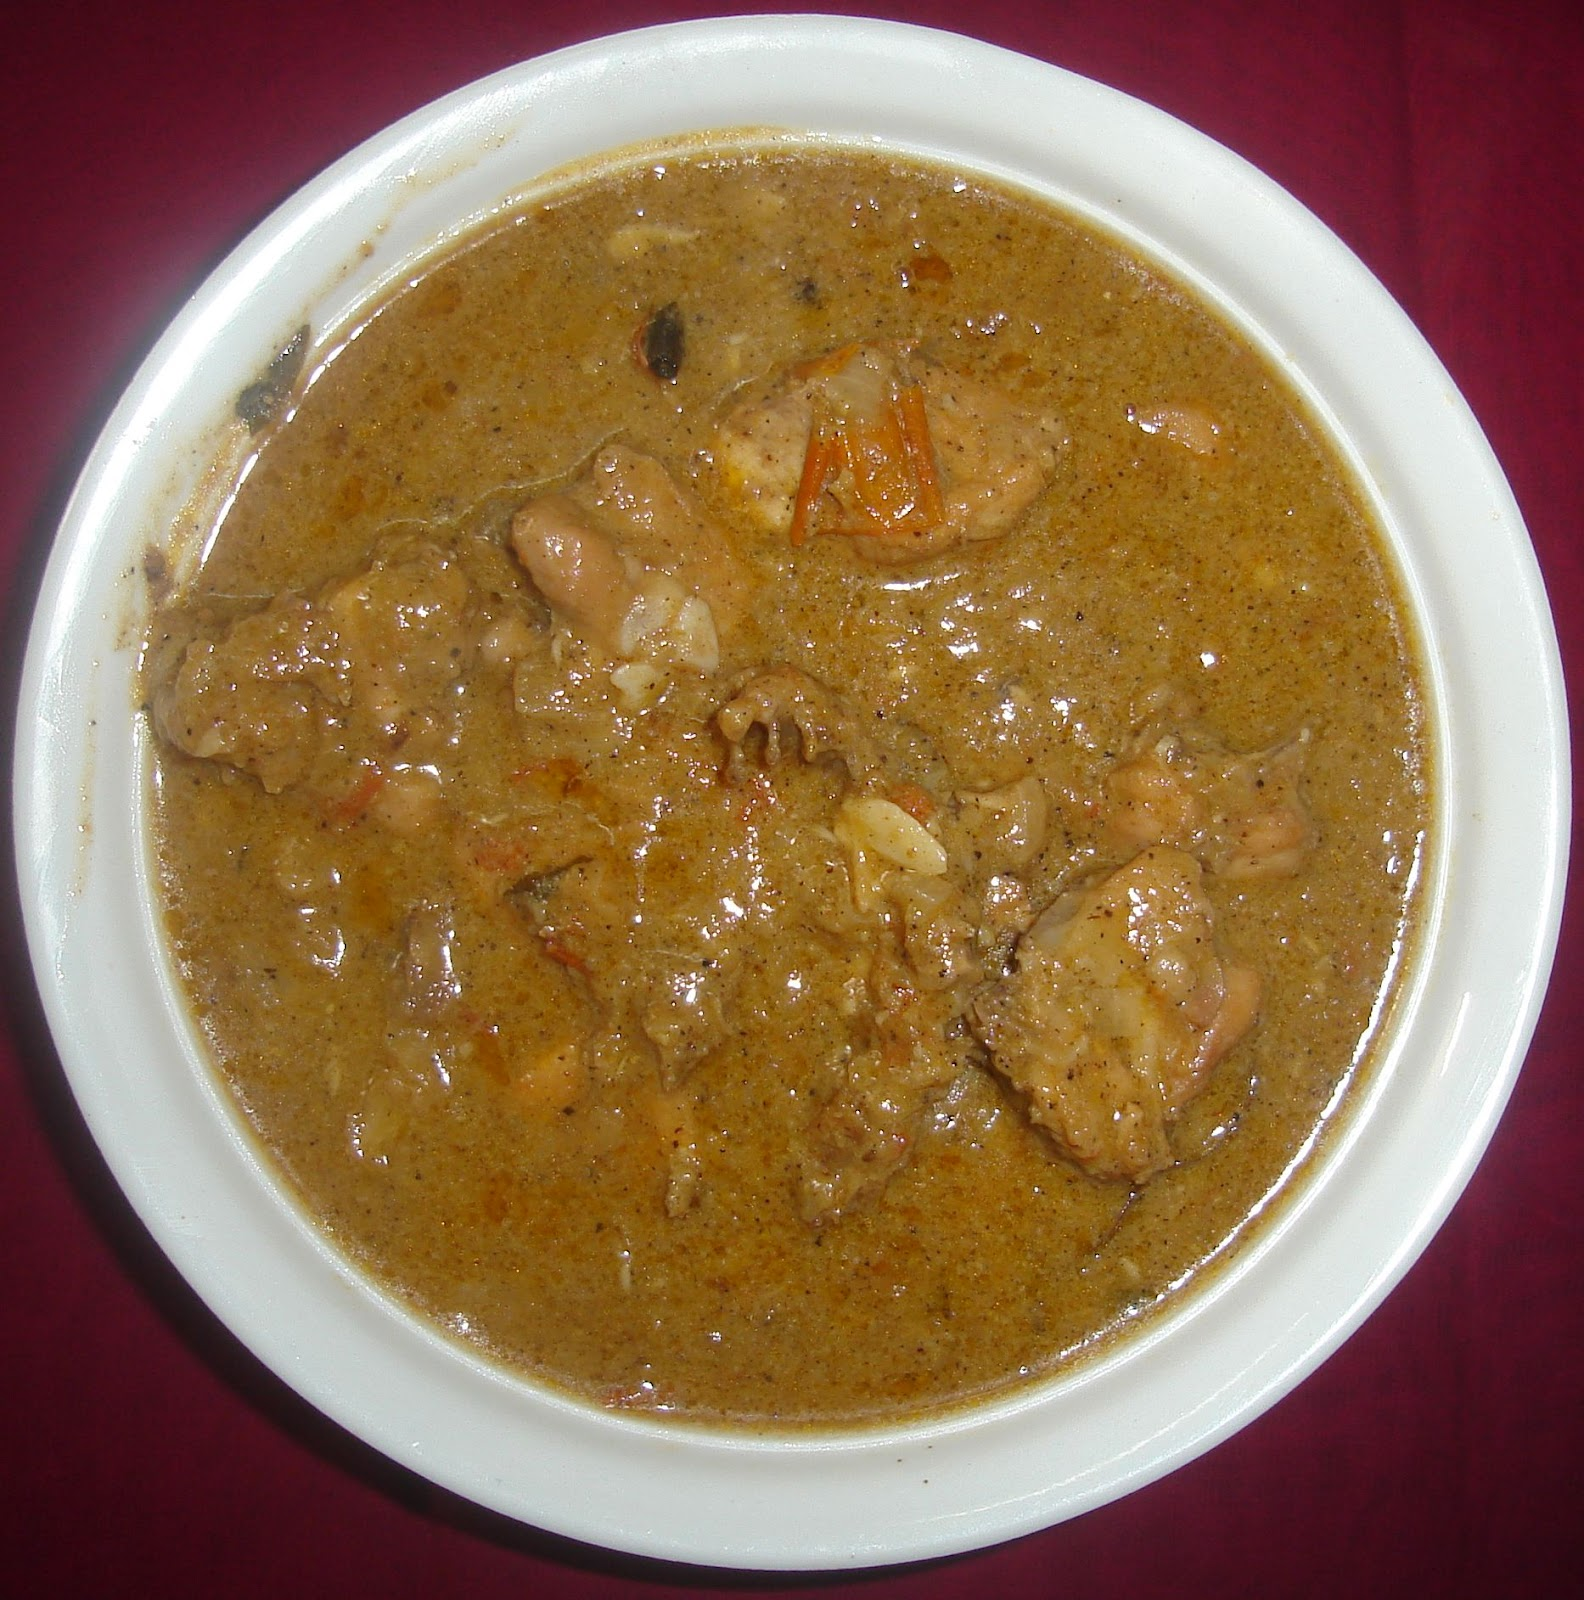 ... : Chettinad Milagu Kozhi Kuzhambu (Chettinad Pepper Chicken Gravy